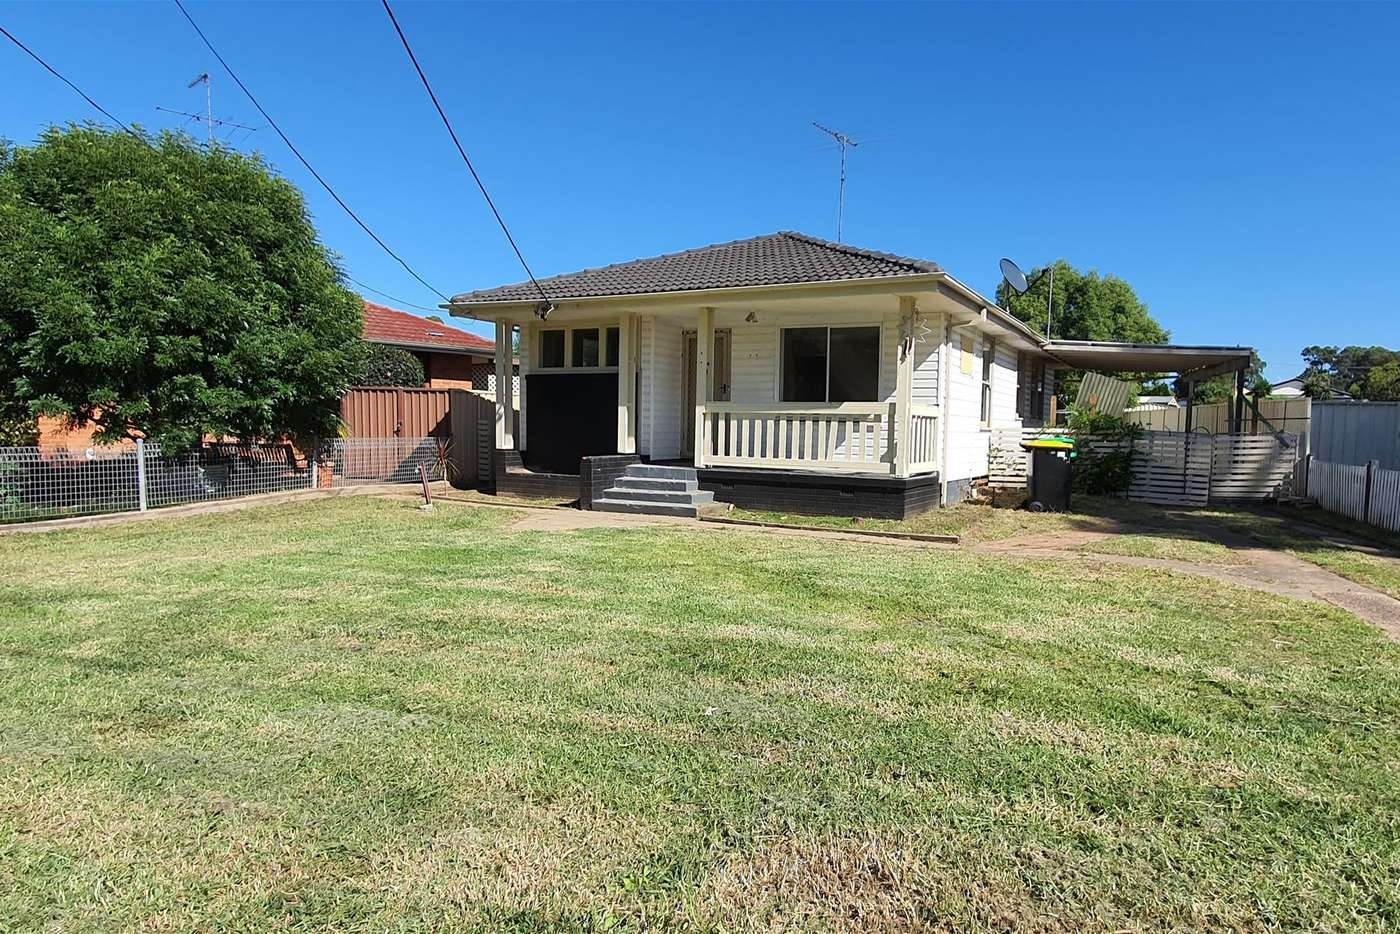 Main view of Homely house listing, 27 Boronia Rd, North St Marys NSW 2760